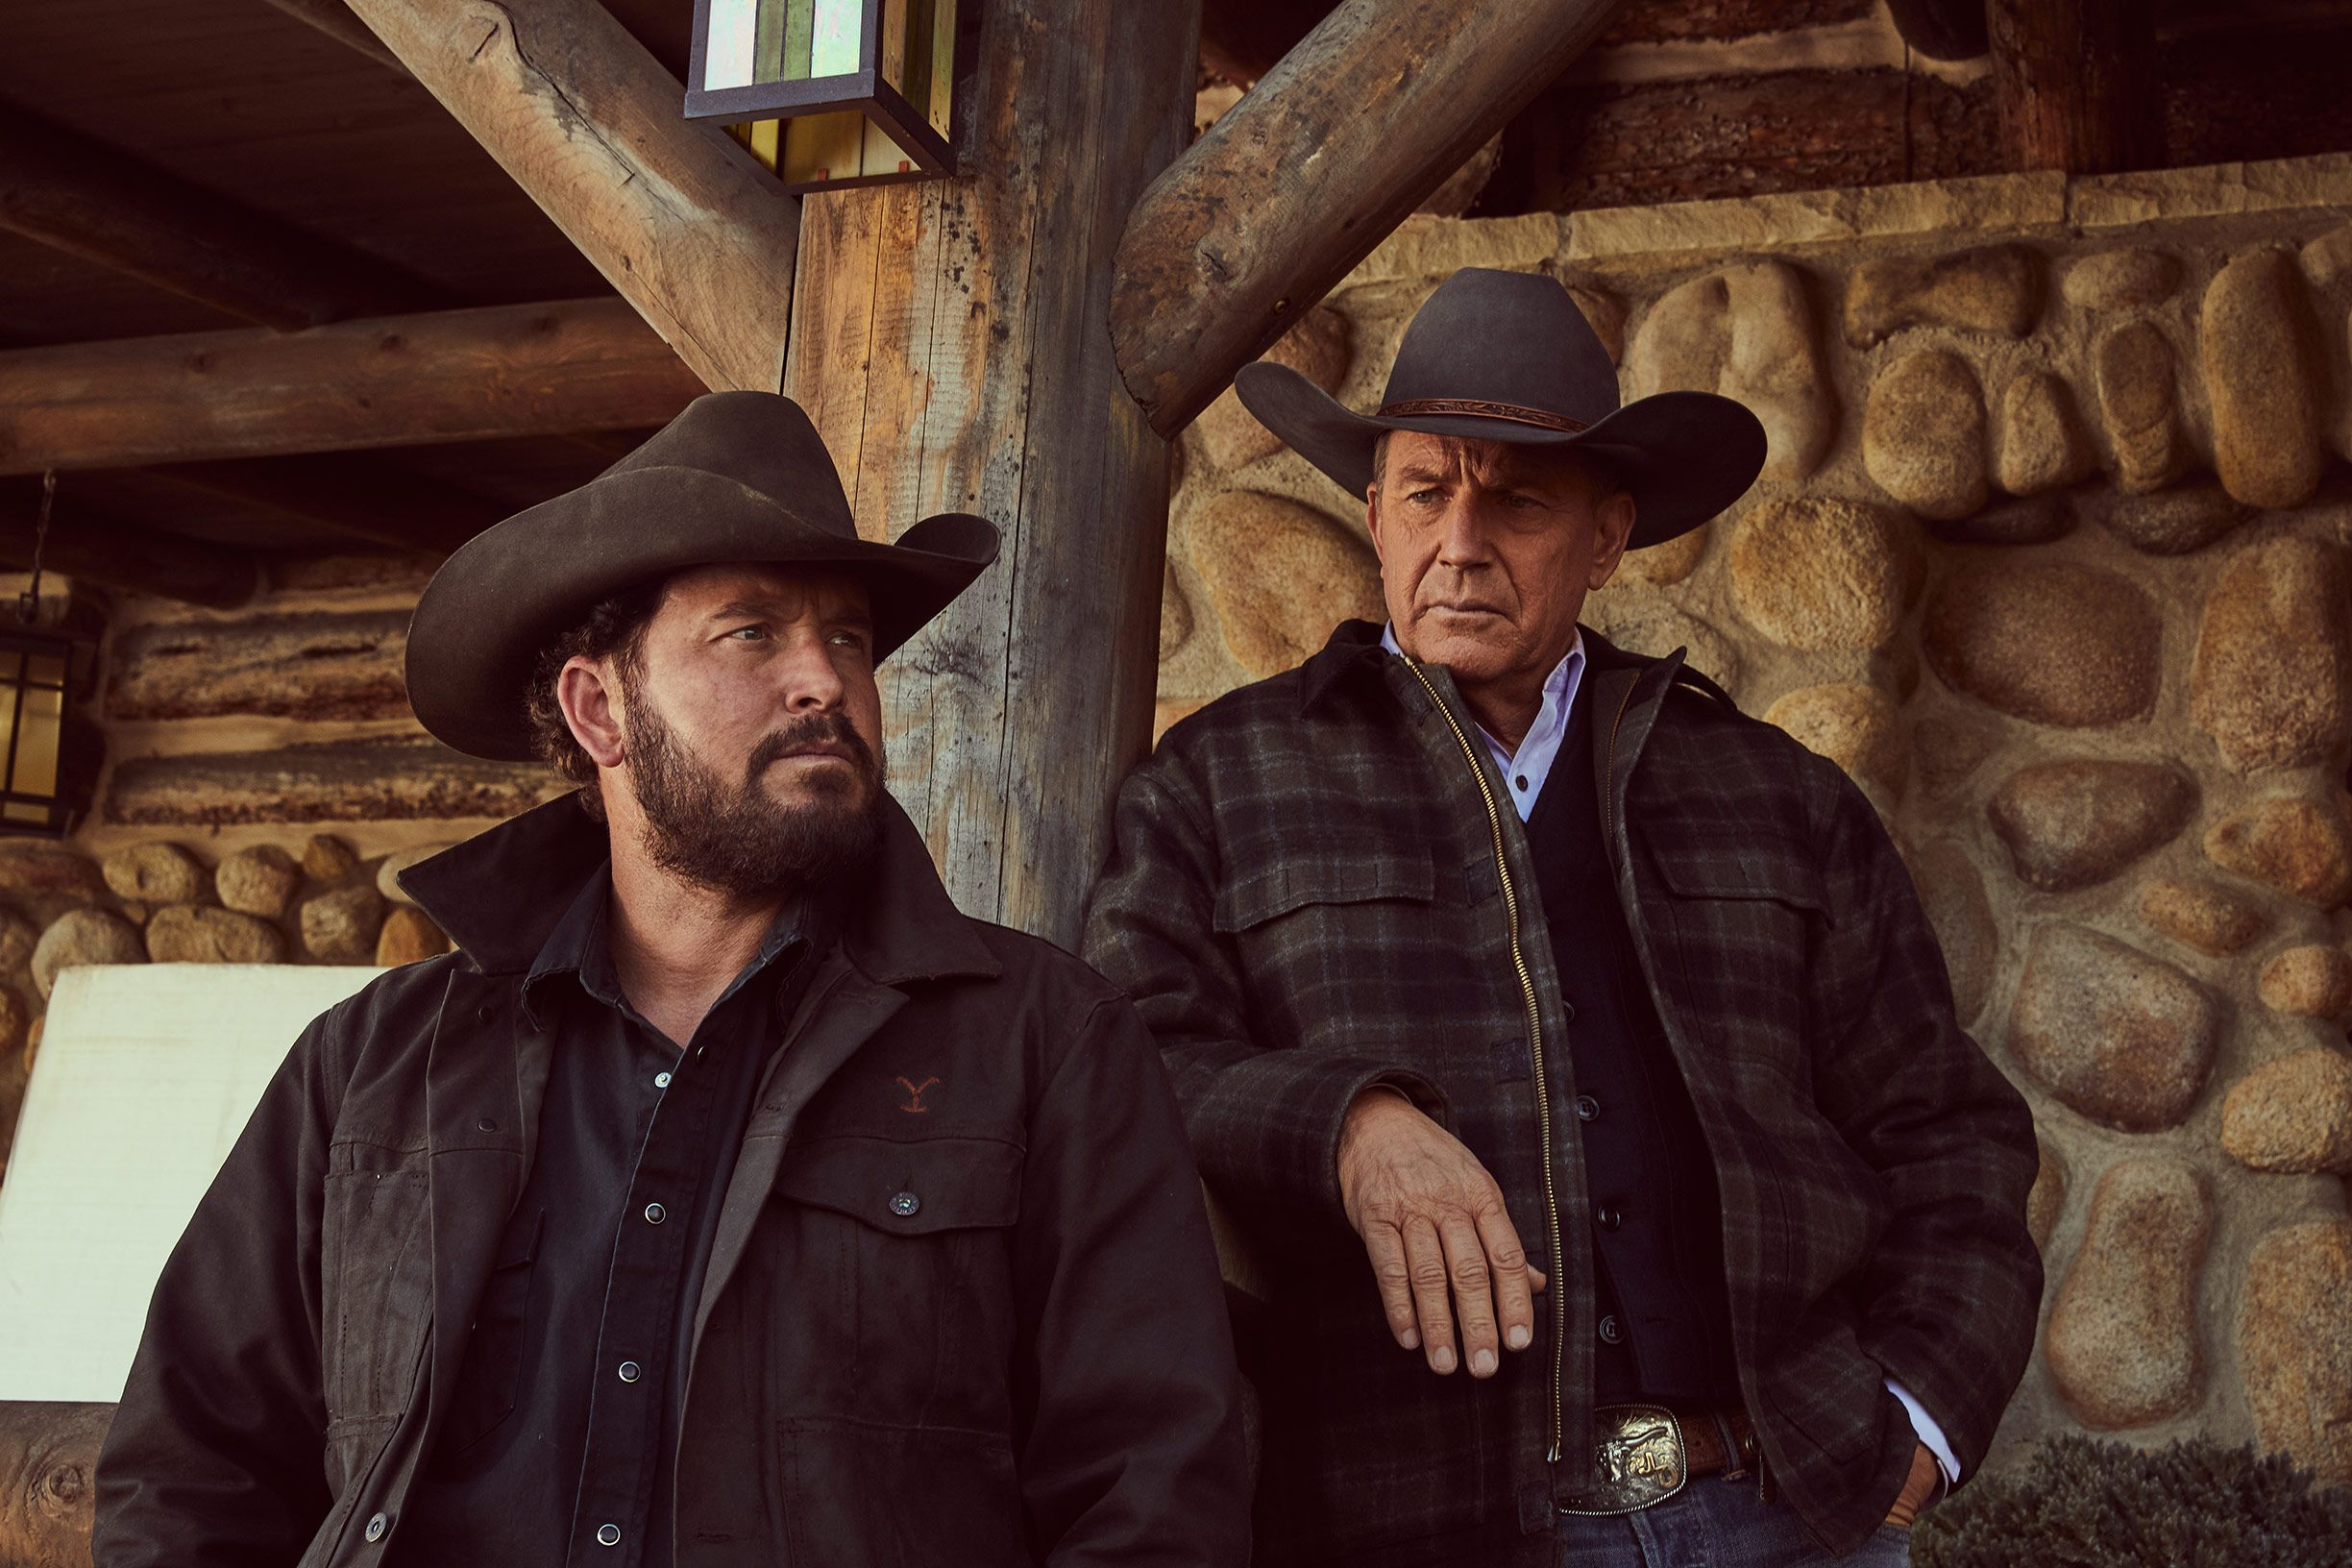 Yellowstone Cast - Yellowstone Show Season 2 Cast